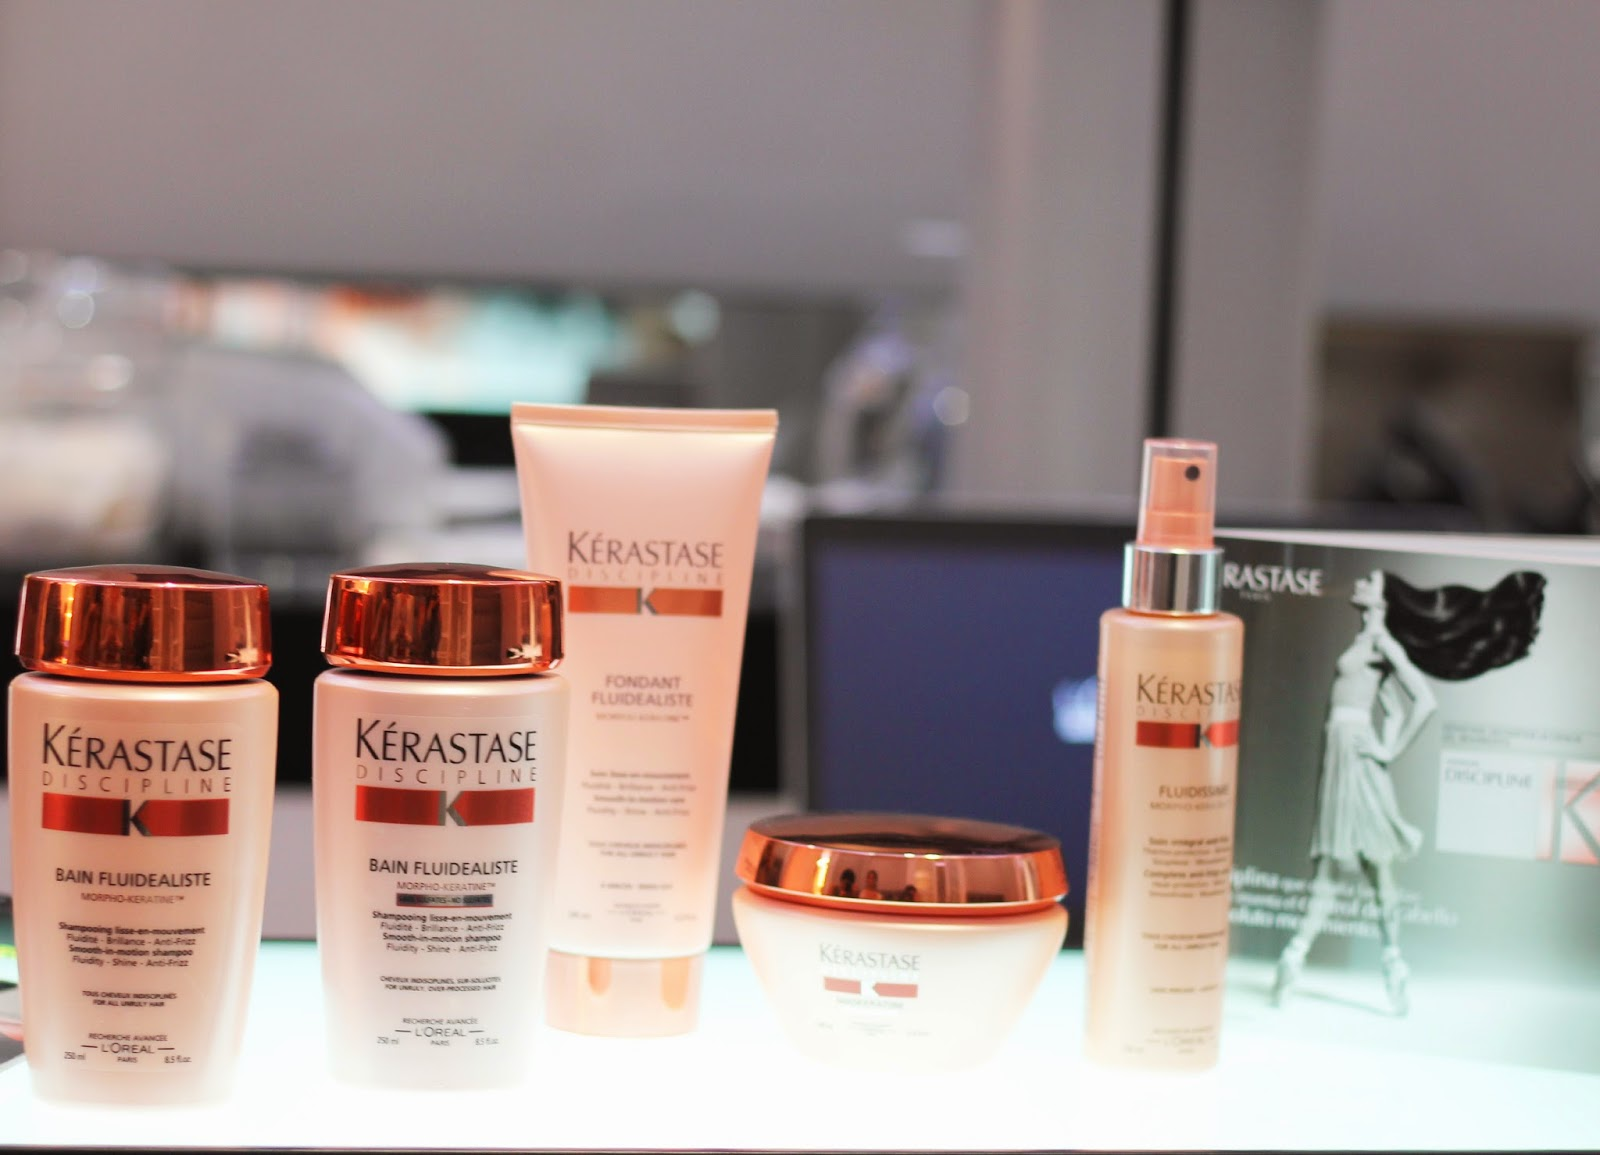 photo-kerastase-discipline-productos